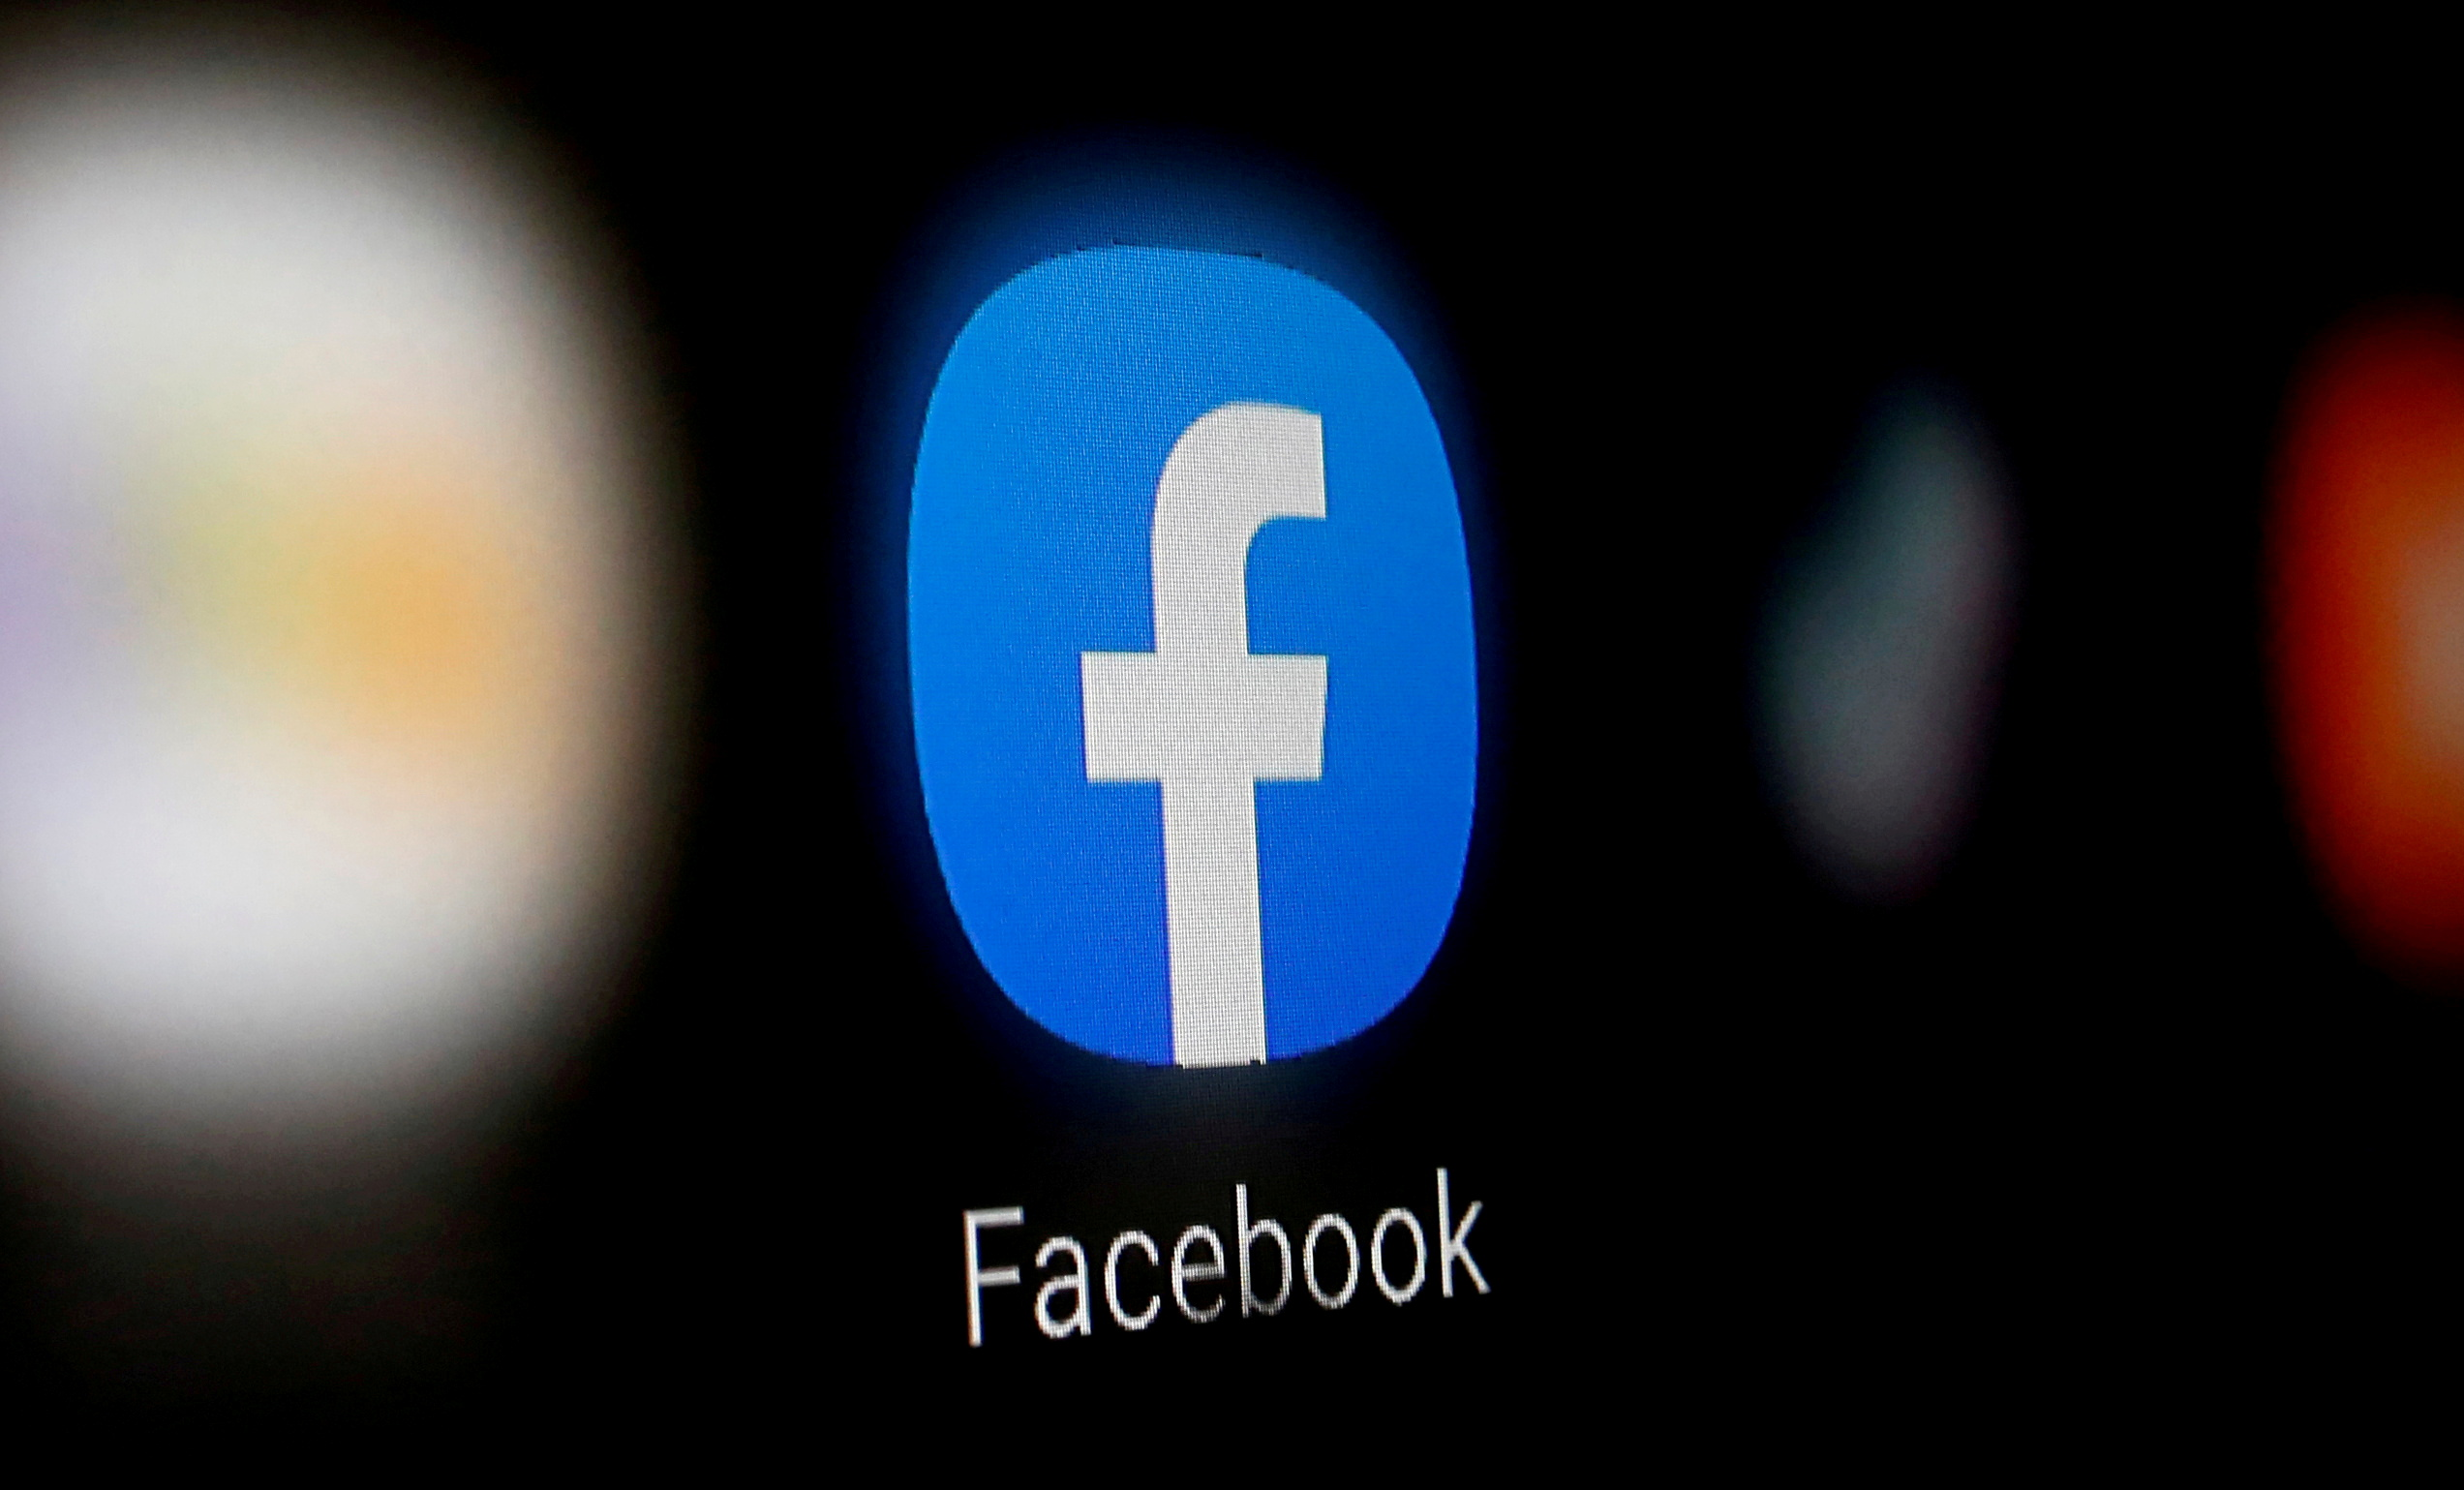 A Facebook logo is displayed on a smartphone in this illustration taken January 6, 2020. REUTERS/Dado Ruvic